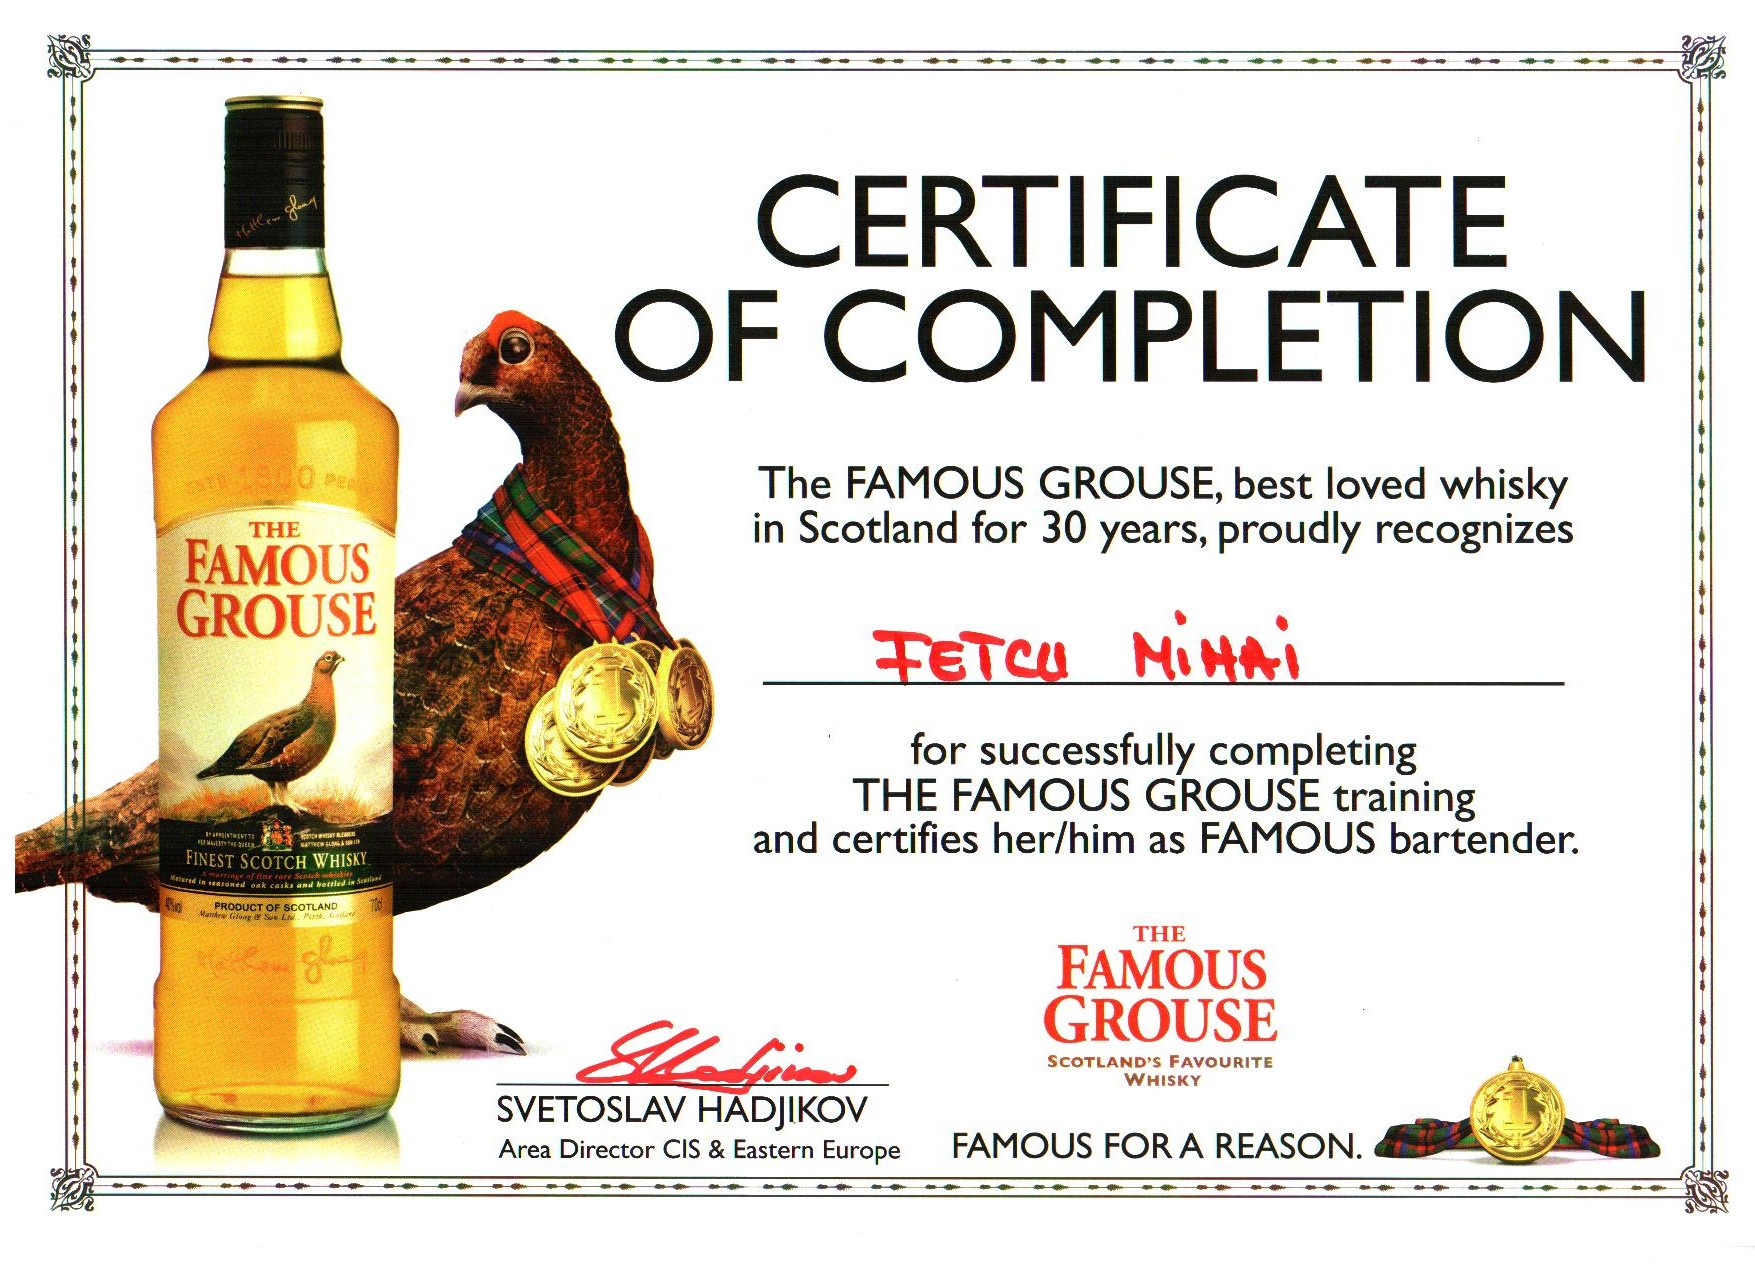 G_certificate of completion Famous GROUSE 2011